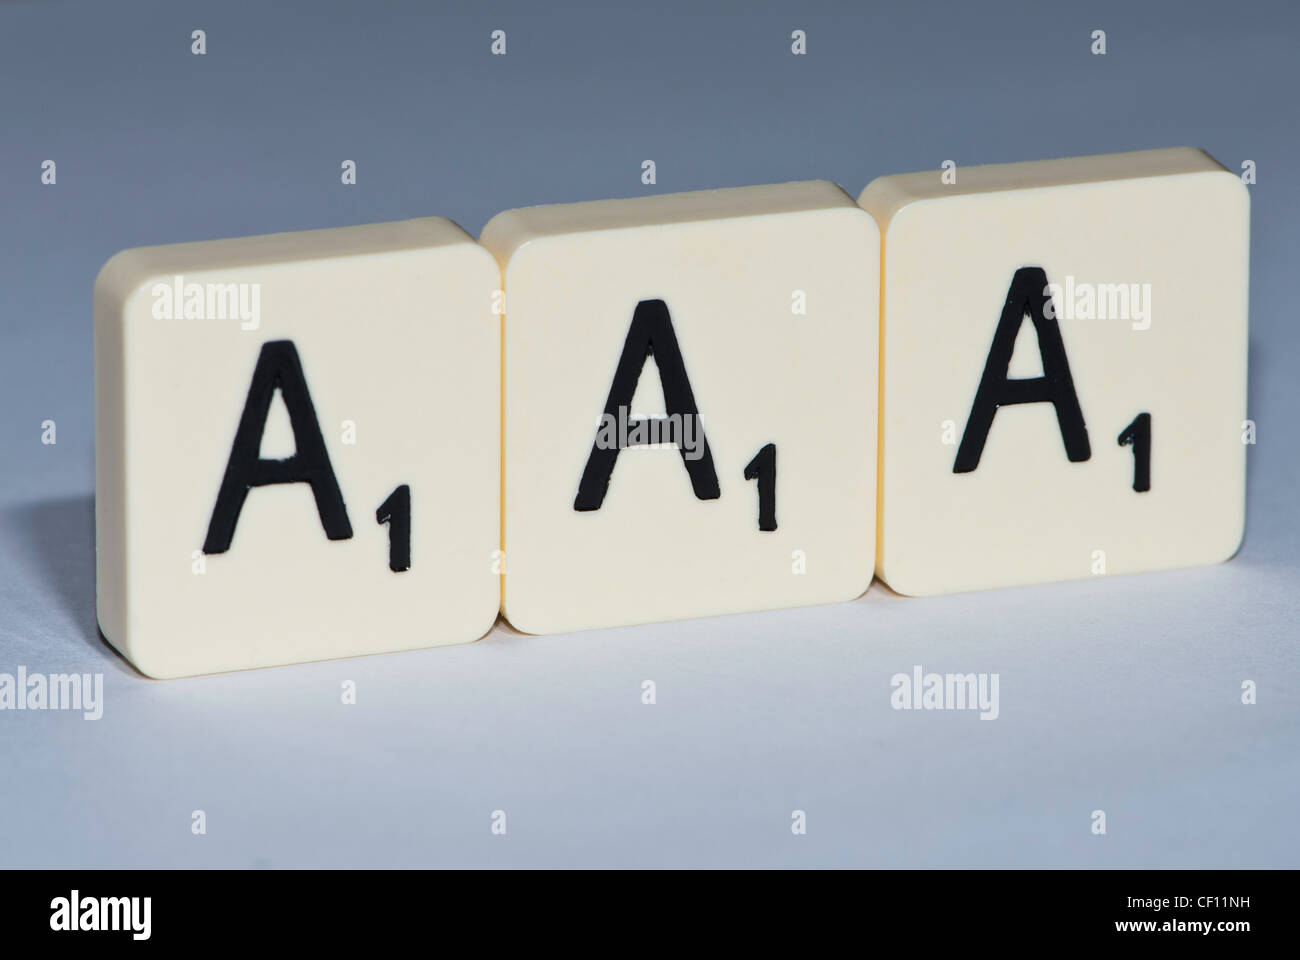 Triple A Aaa Stock Photo 43663917 Alamy